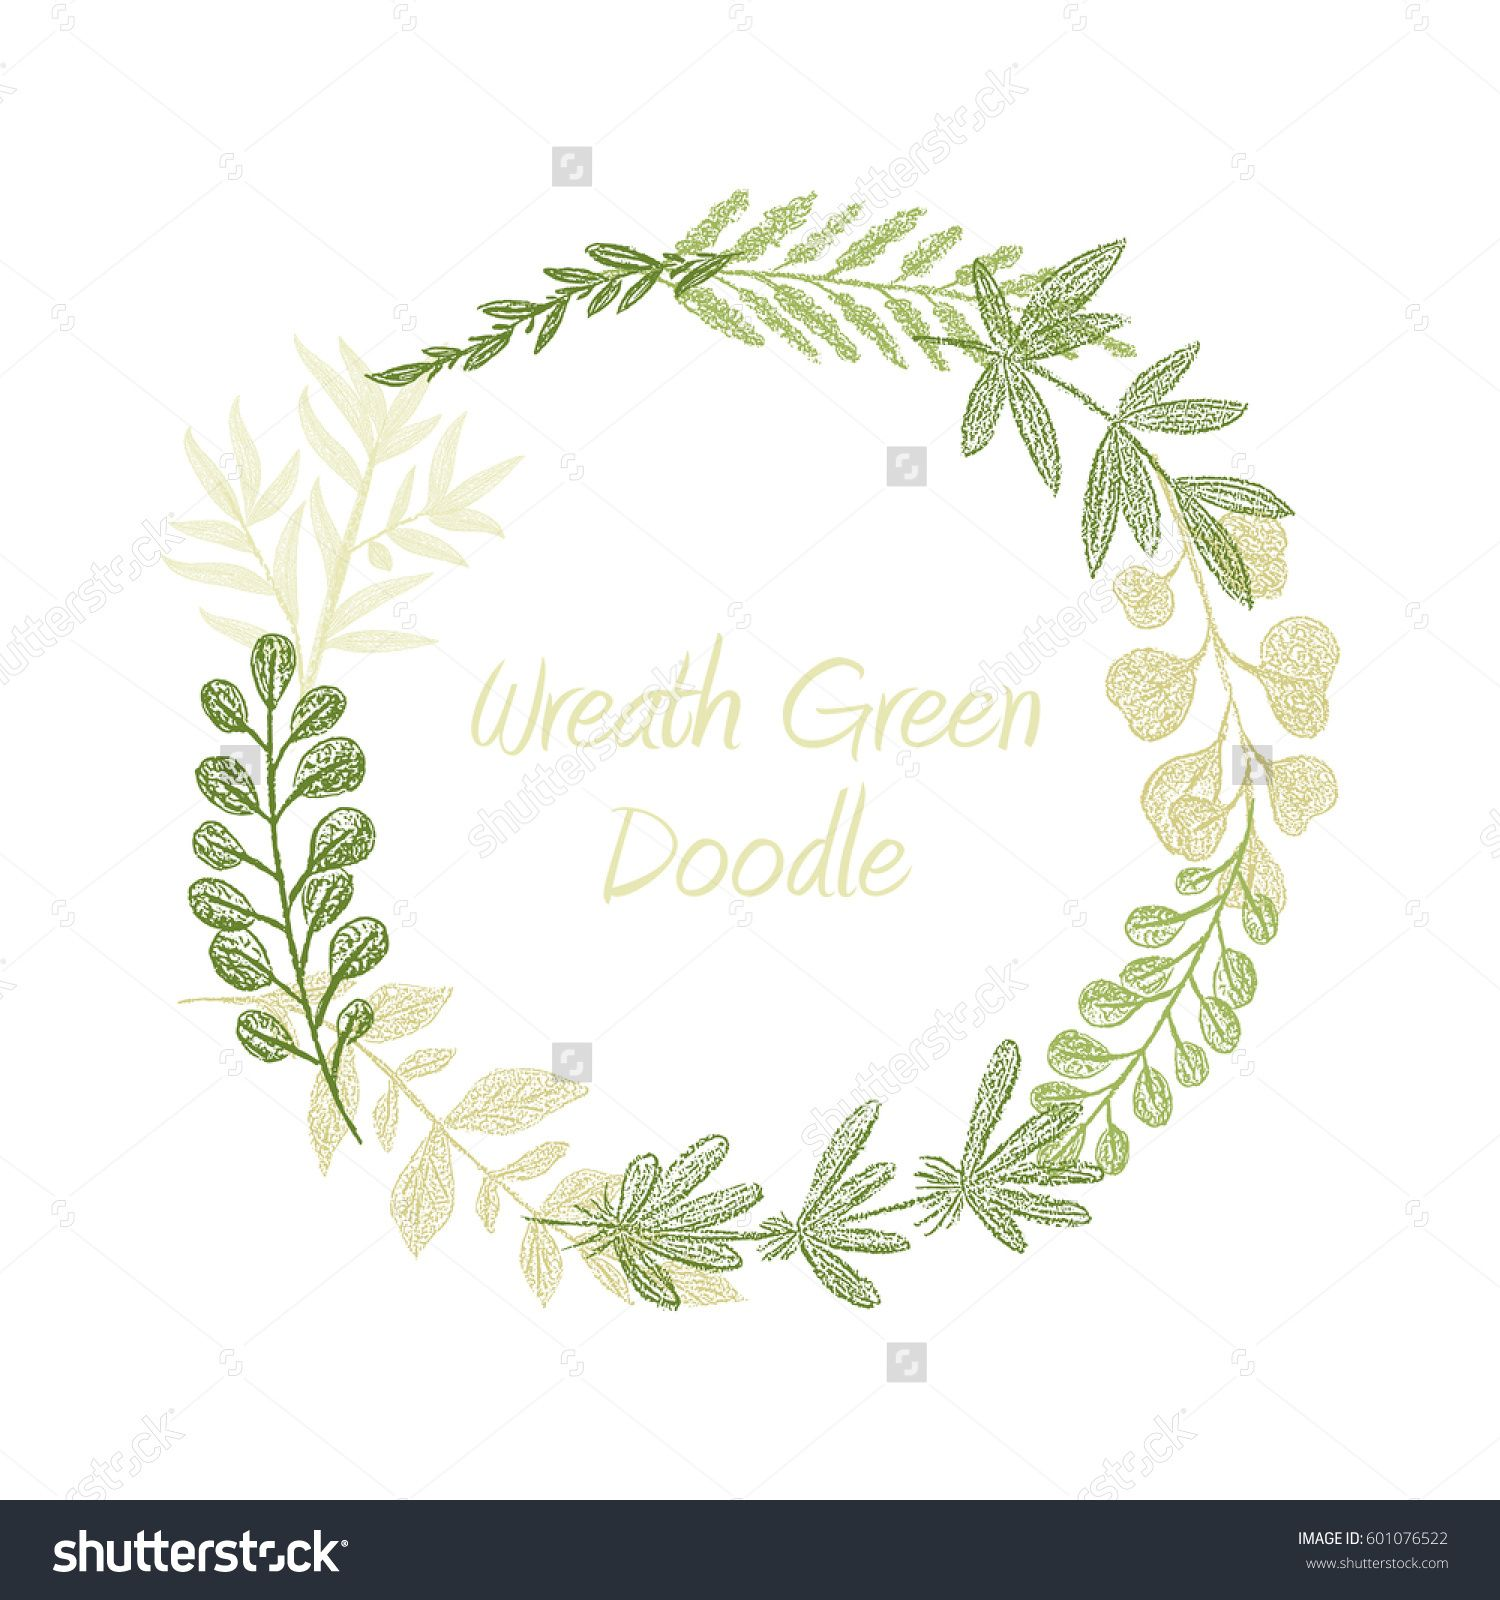 Greenery floral circle wreath vector greeting invitation or wedding card template Hand drawn